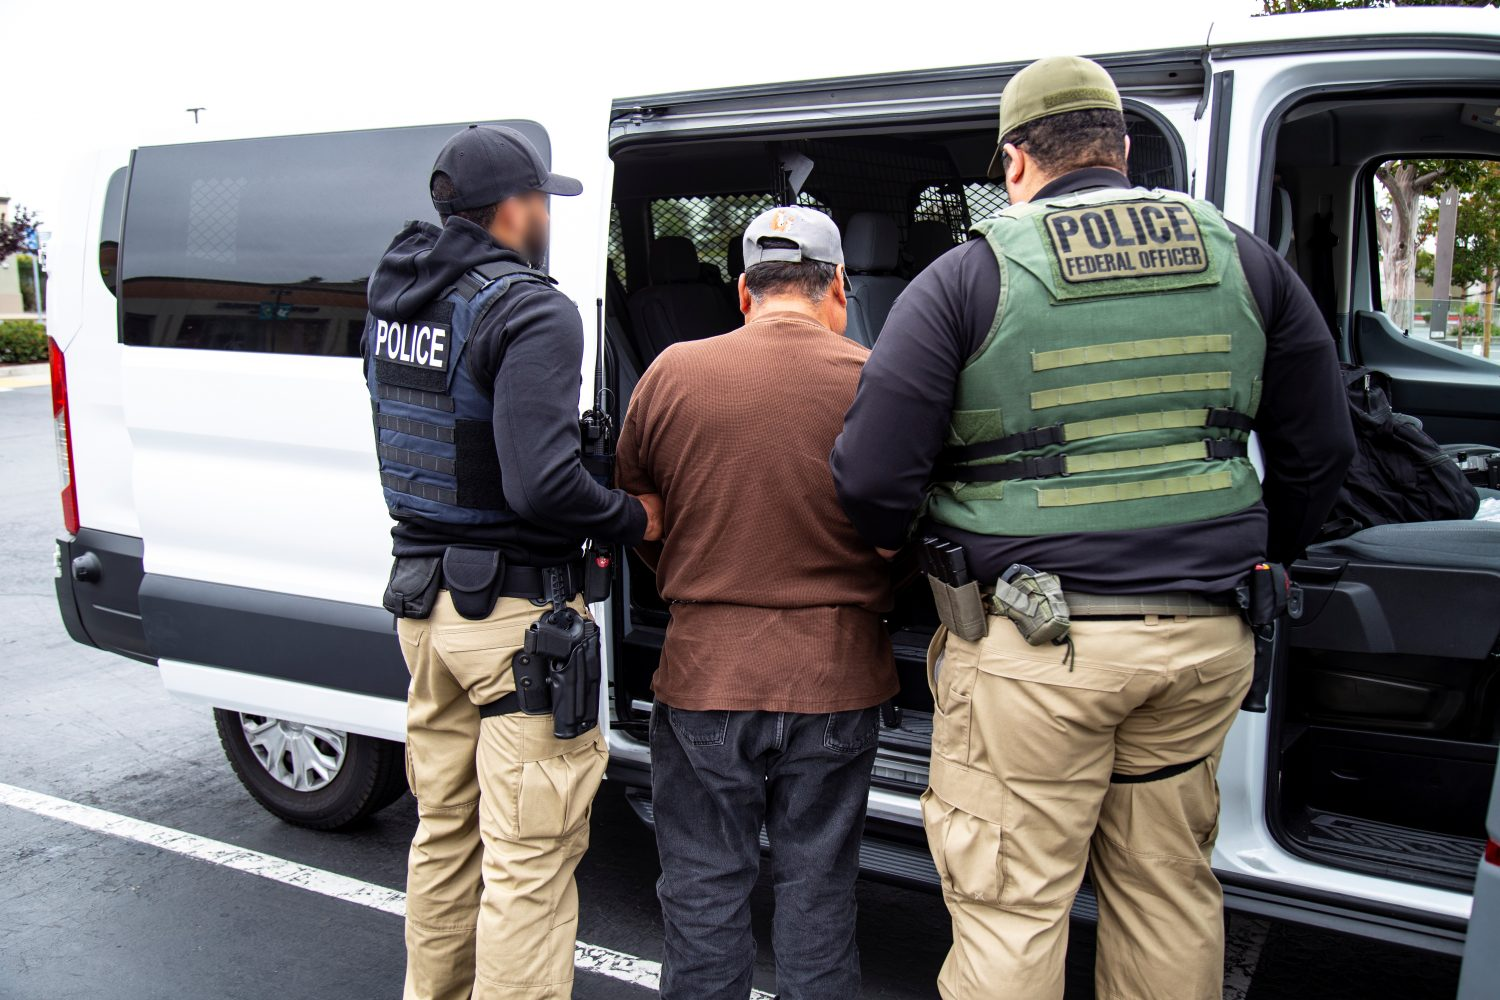 FILE PHOTO: U.S. Immigration and Customs Enforcement officers make an arrest after carrying out a raid in San Francisco, California, U.S. in this July 7, 2019 handout photo. Ron Rogers/U.S. Immigration and Customs Enforcement/Handout via REUTERS